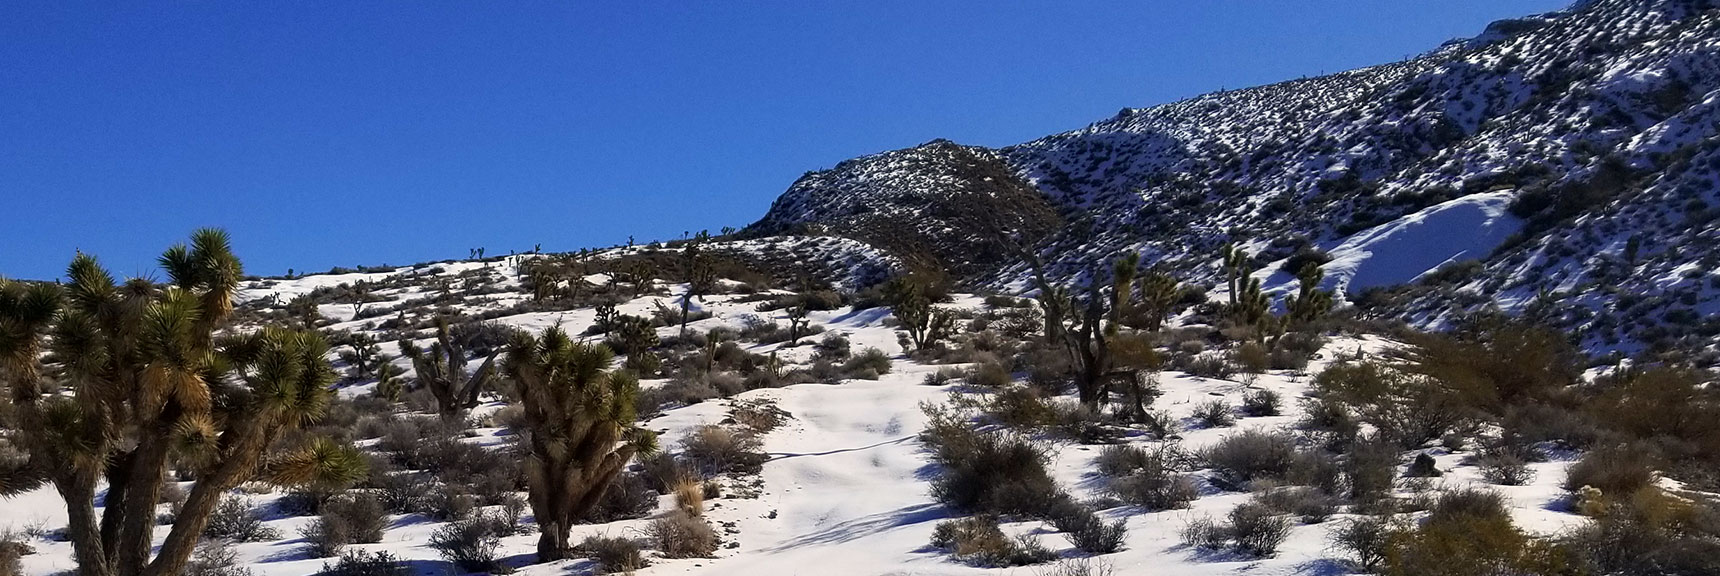 North Side of Gass Peak After Snowfall, Nevada